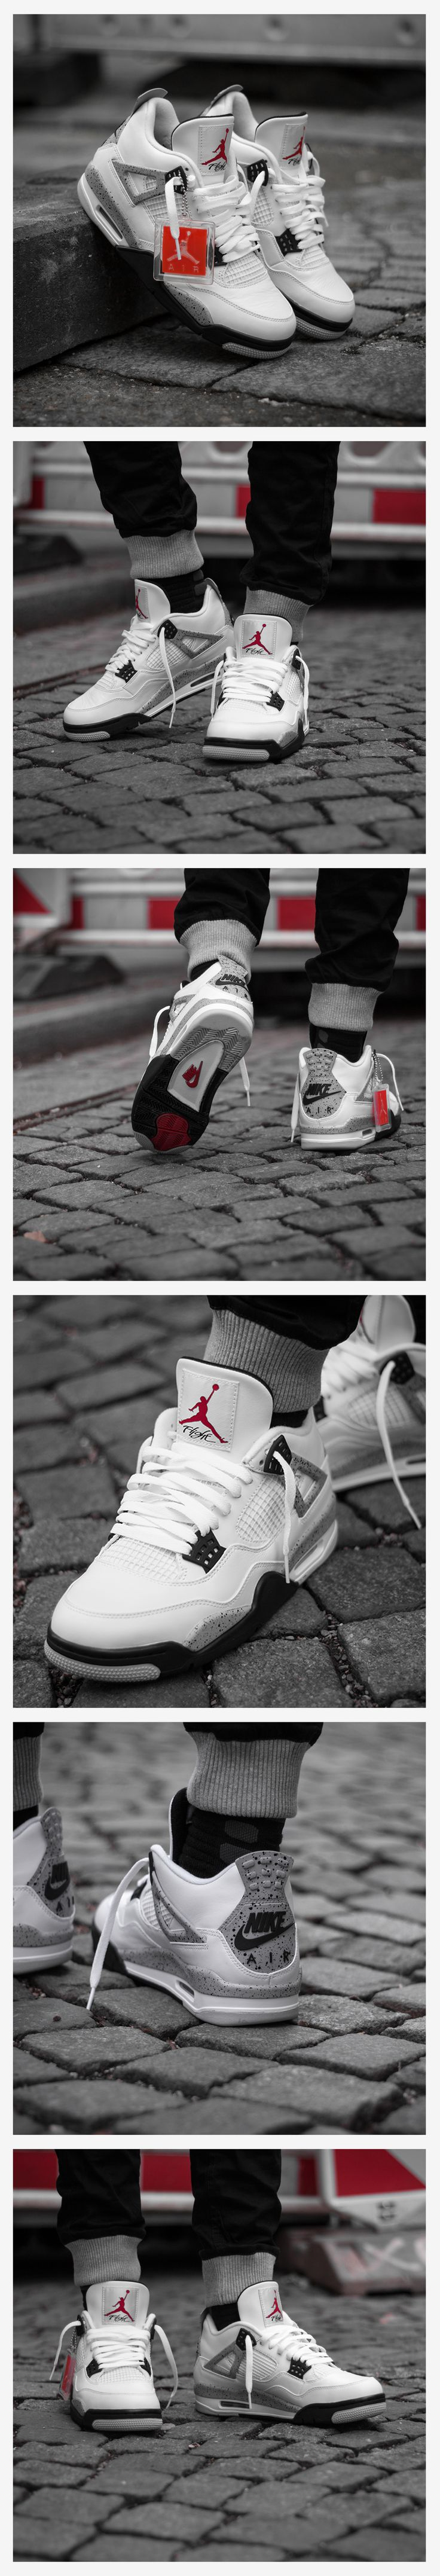 Mens Air Jordan Street Classic White Red shoes